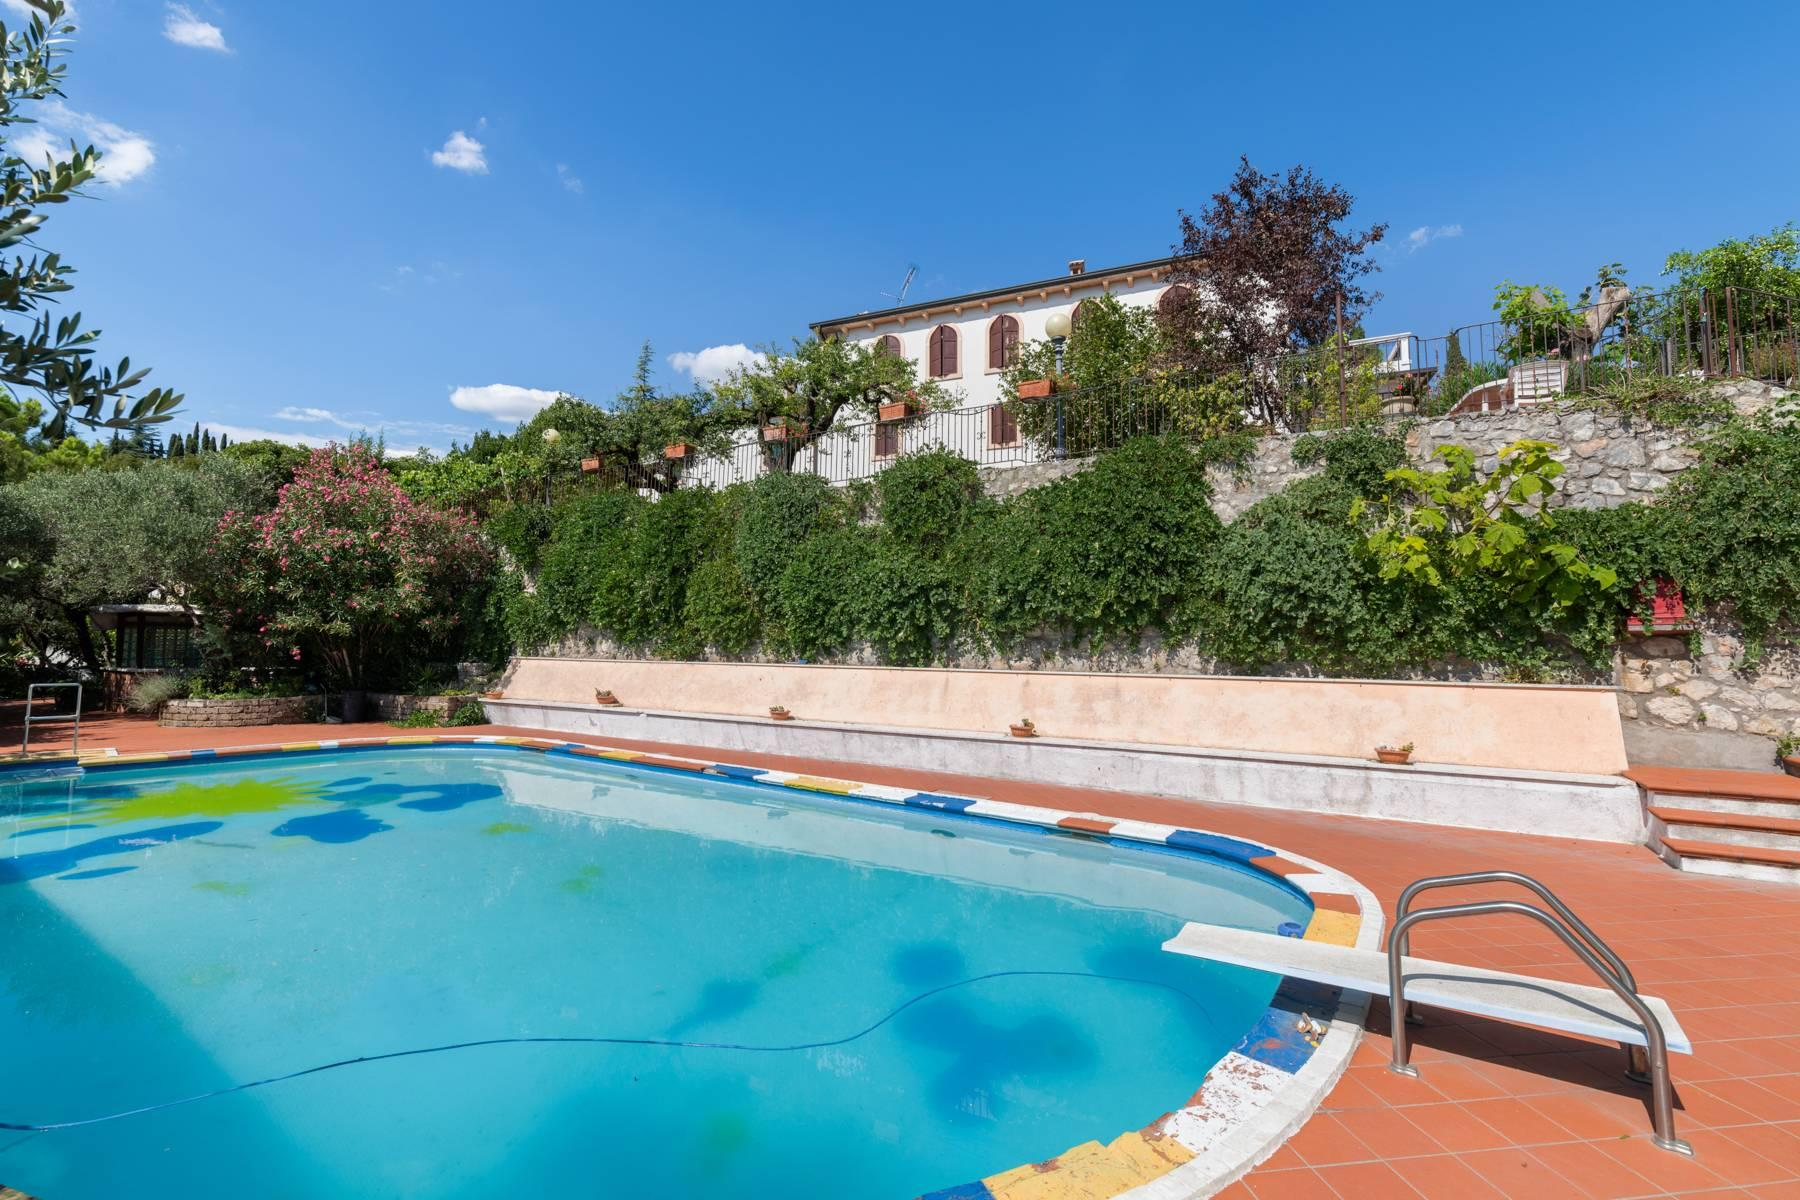 Historic country villa with swimming pool, tennis court and estate on the hills of Verona - 4